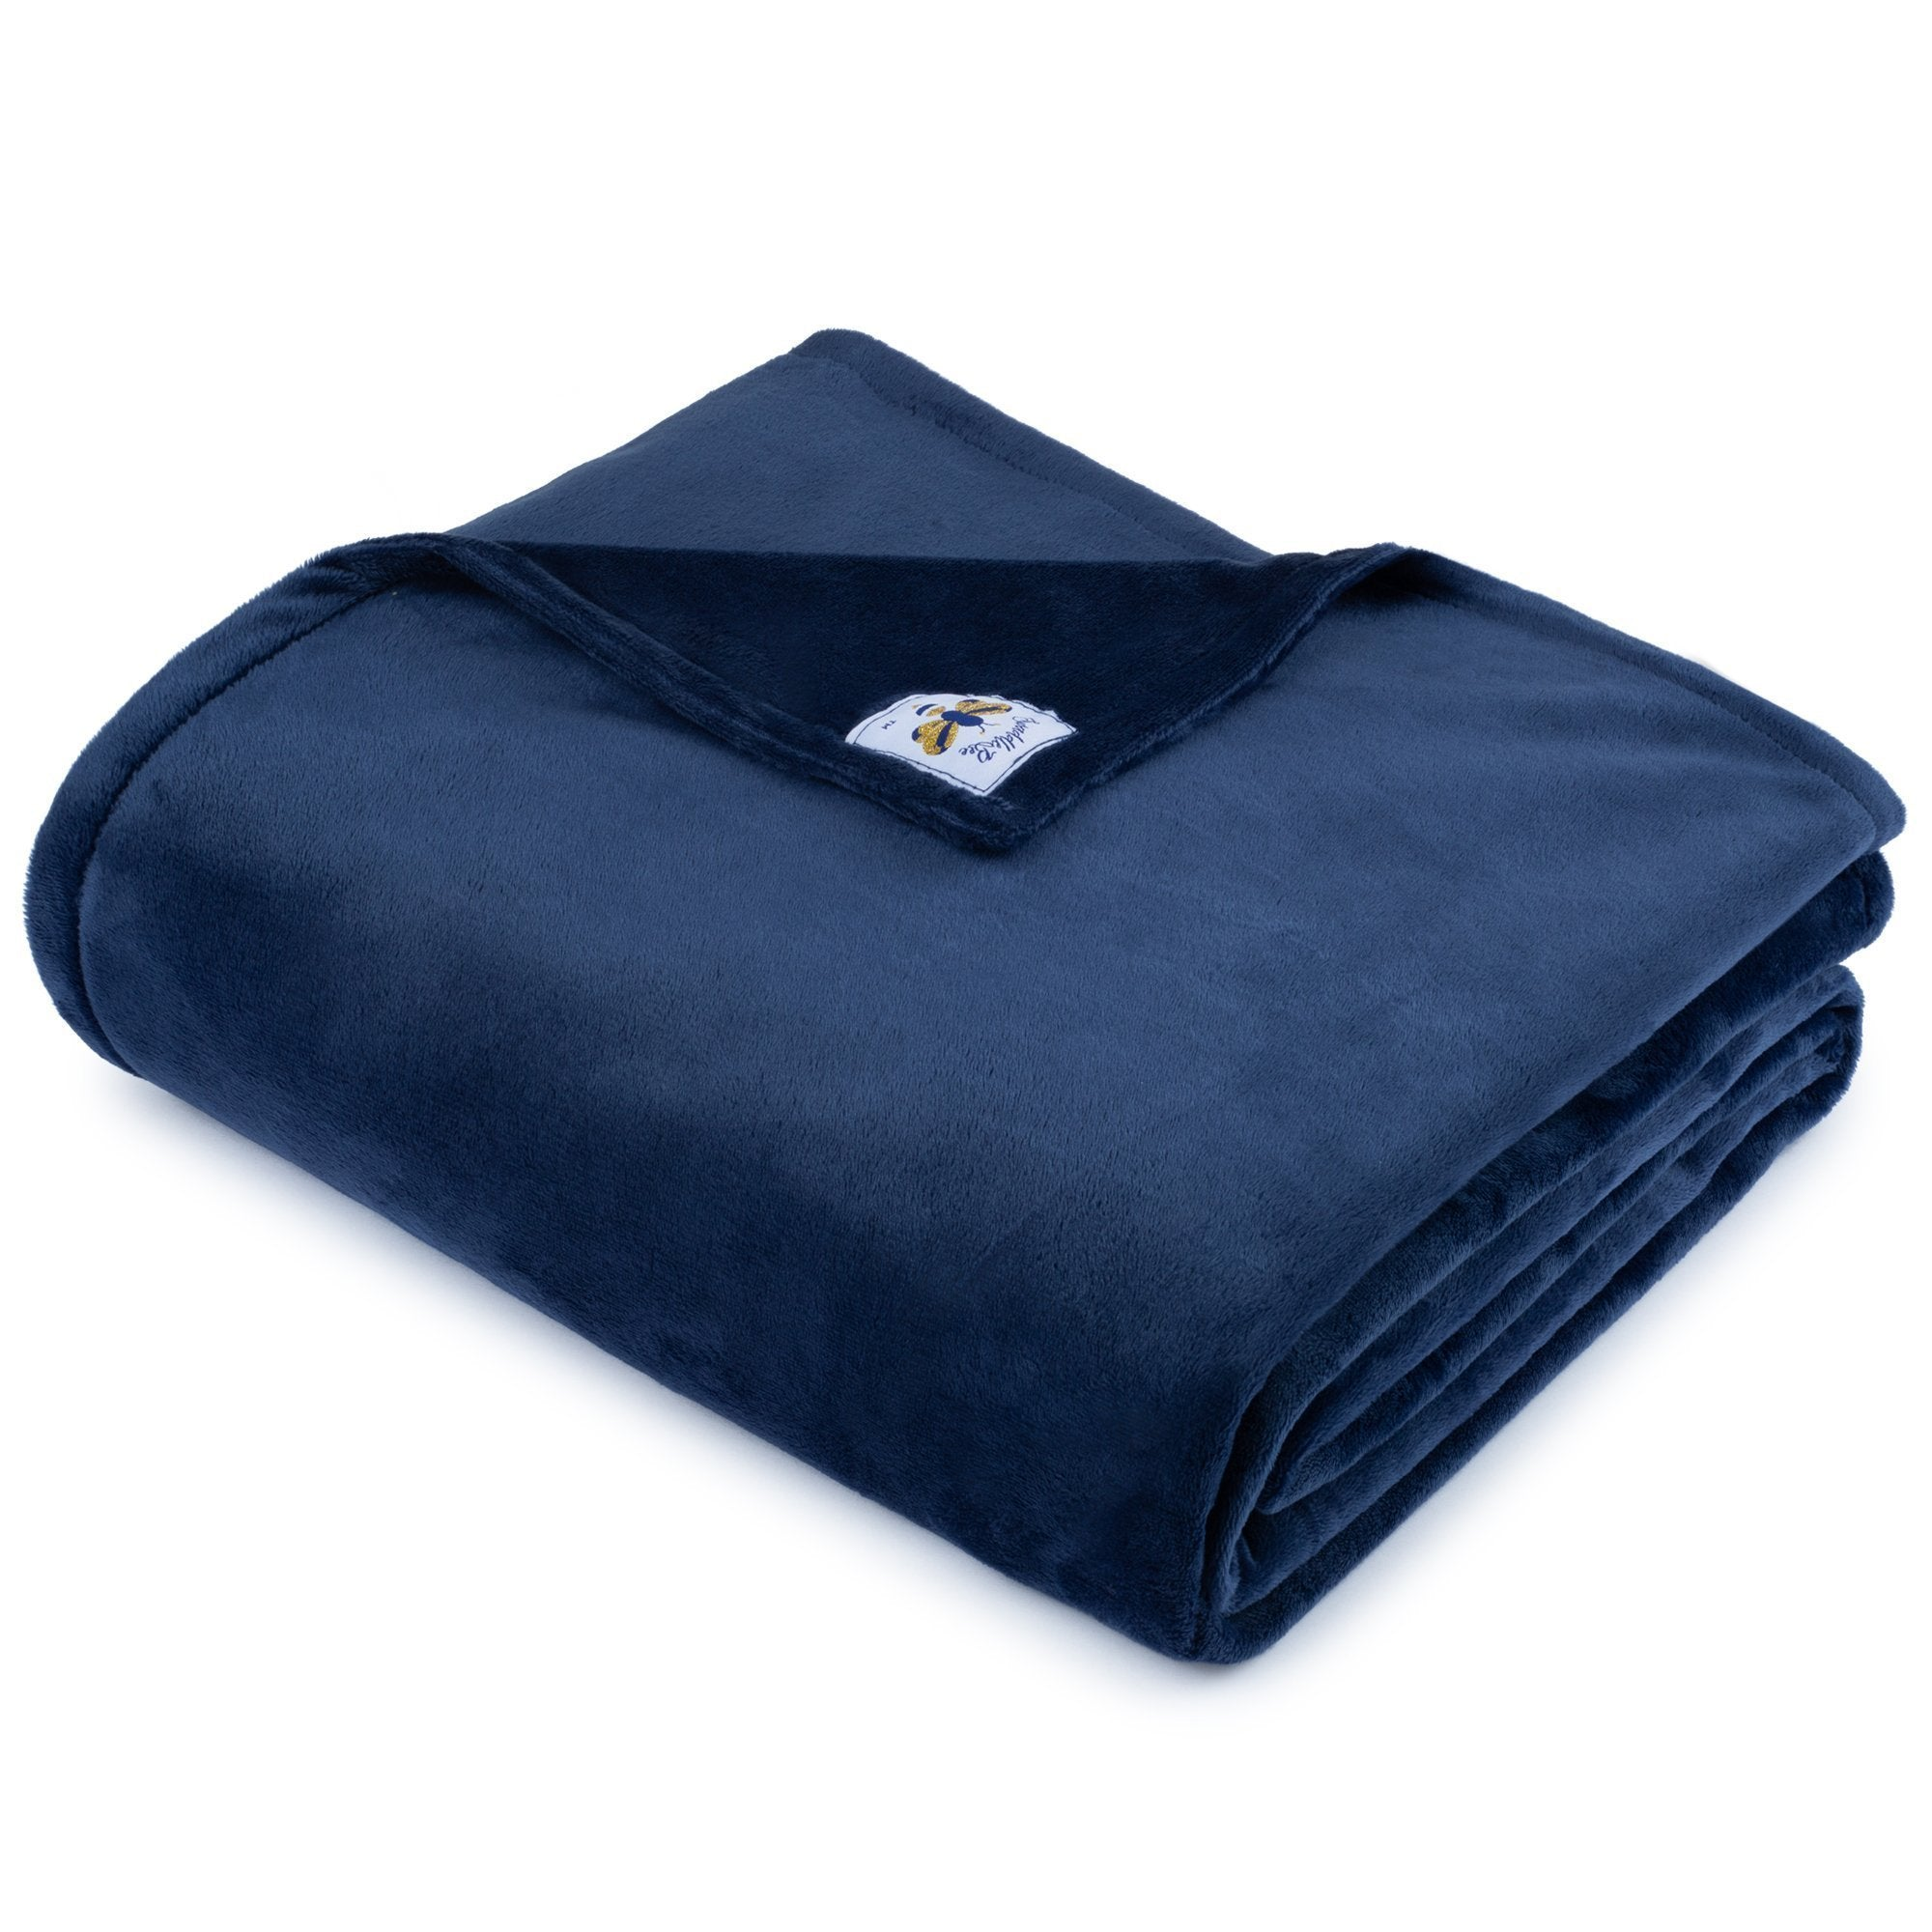 PRE ORDER BiggerBee Minky Throw Blanket Solid Navy *ARRIVES IN 1.5 WEEKS* (approx)